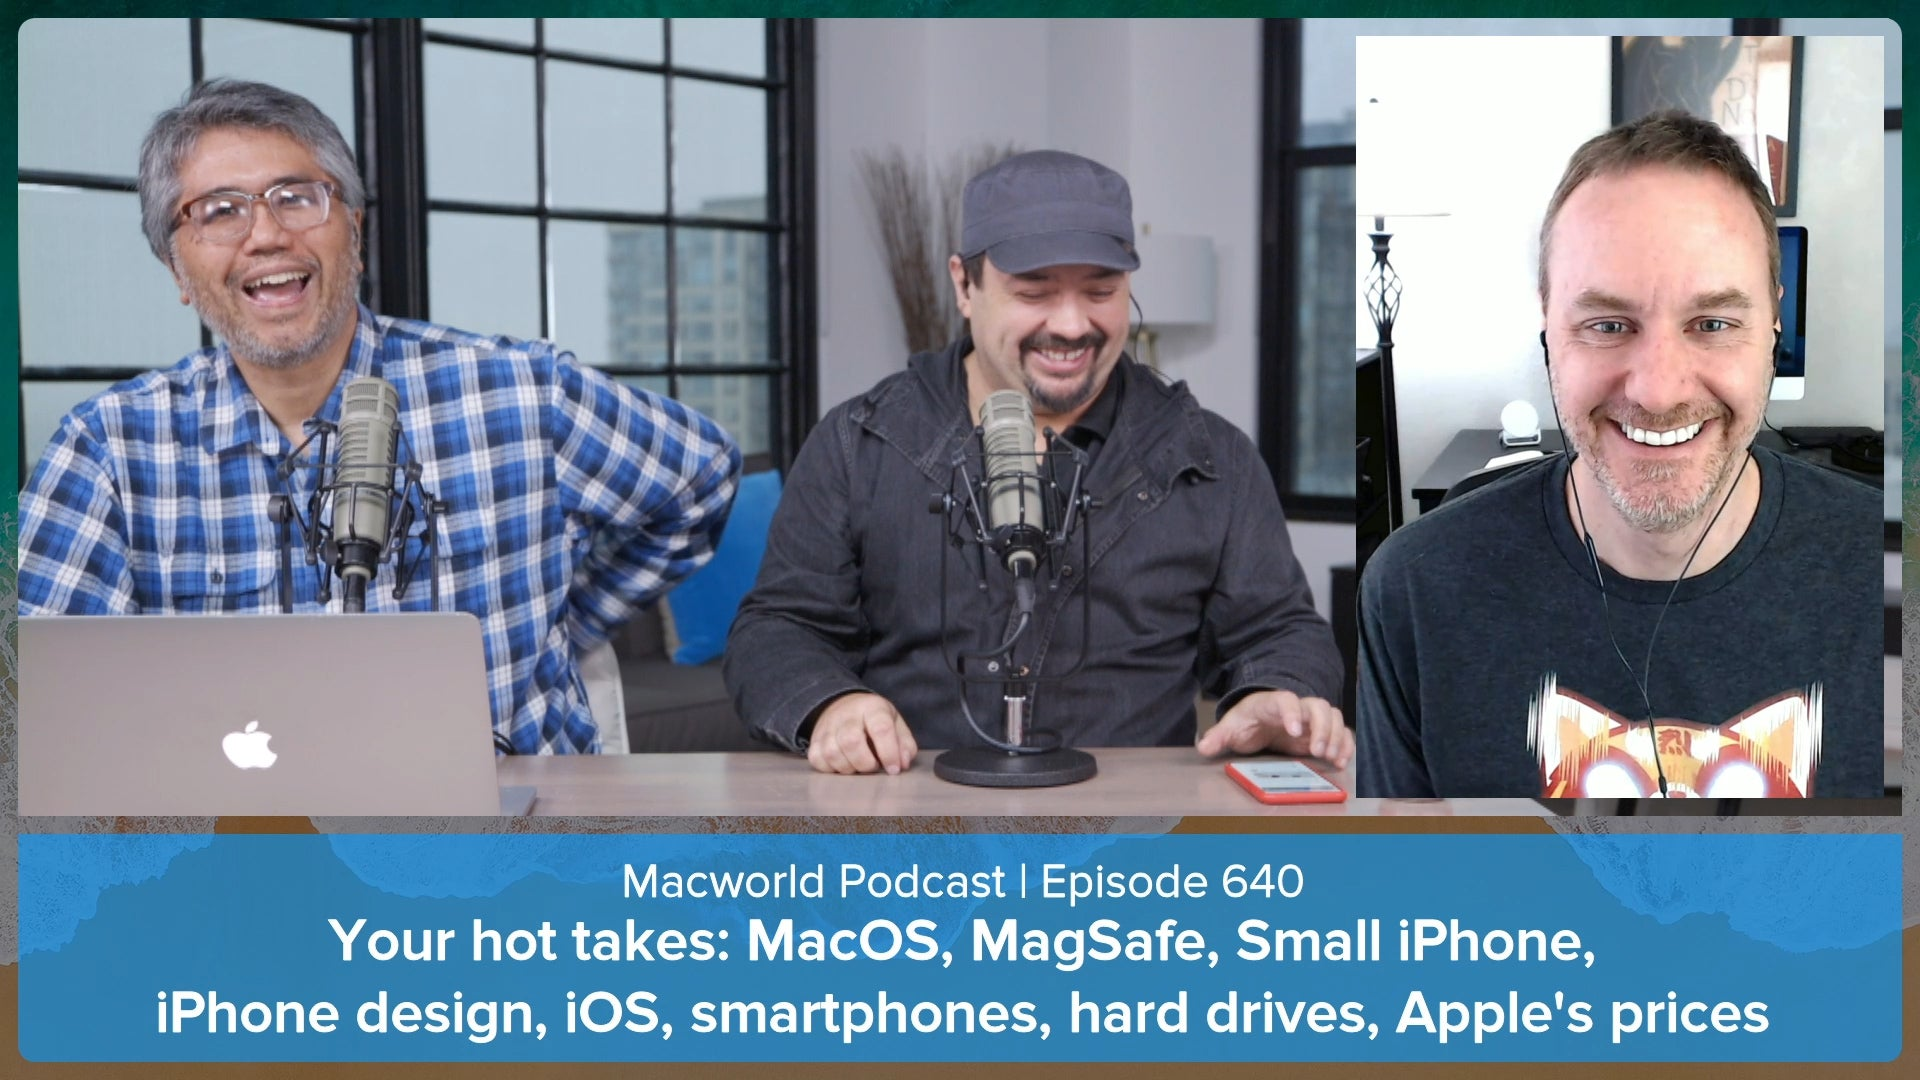 Macworld Podcast episode 640